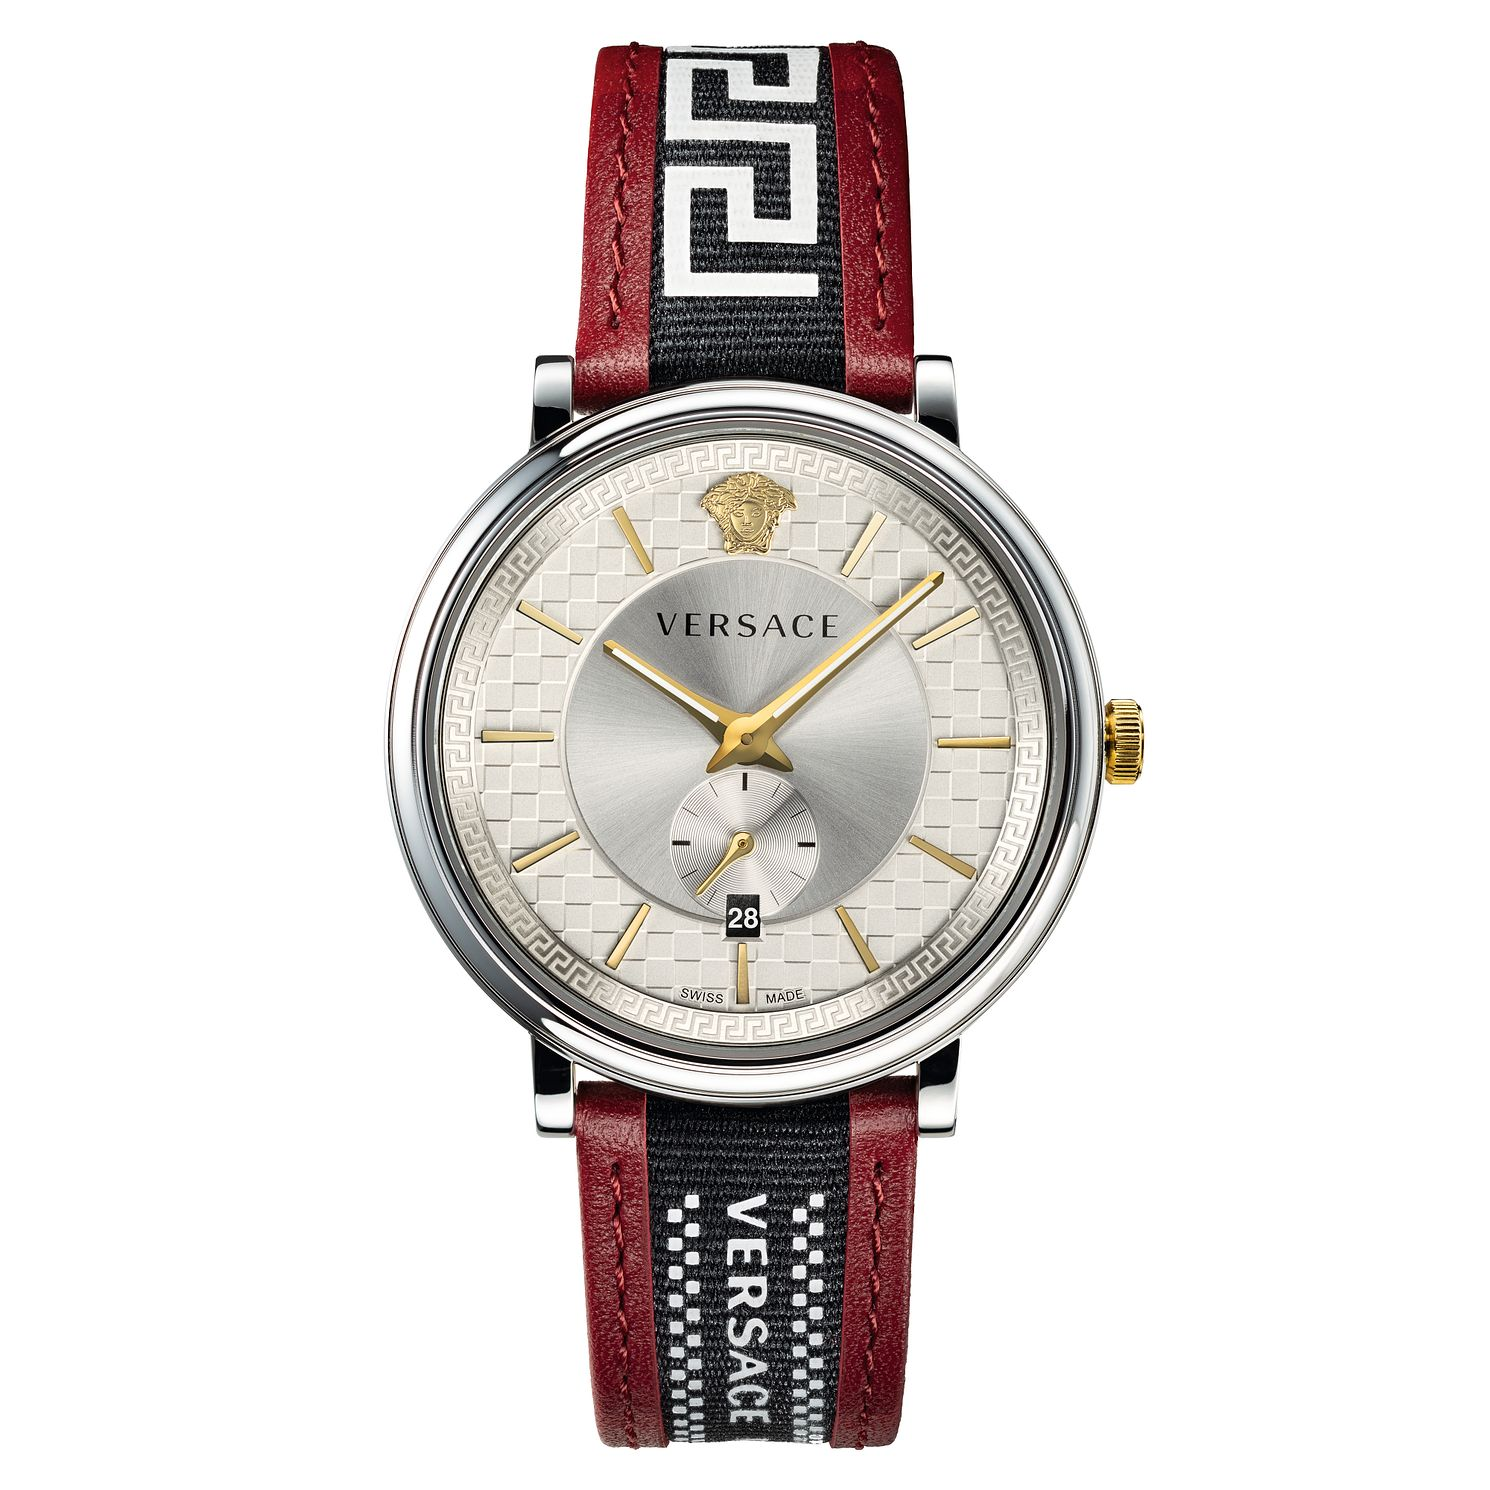 Versace V-Circle Men's Red Patterned Leather Strap Watch - Product number 5824001